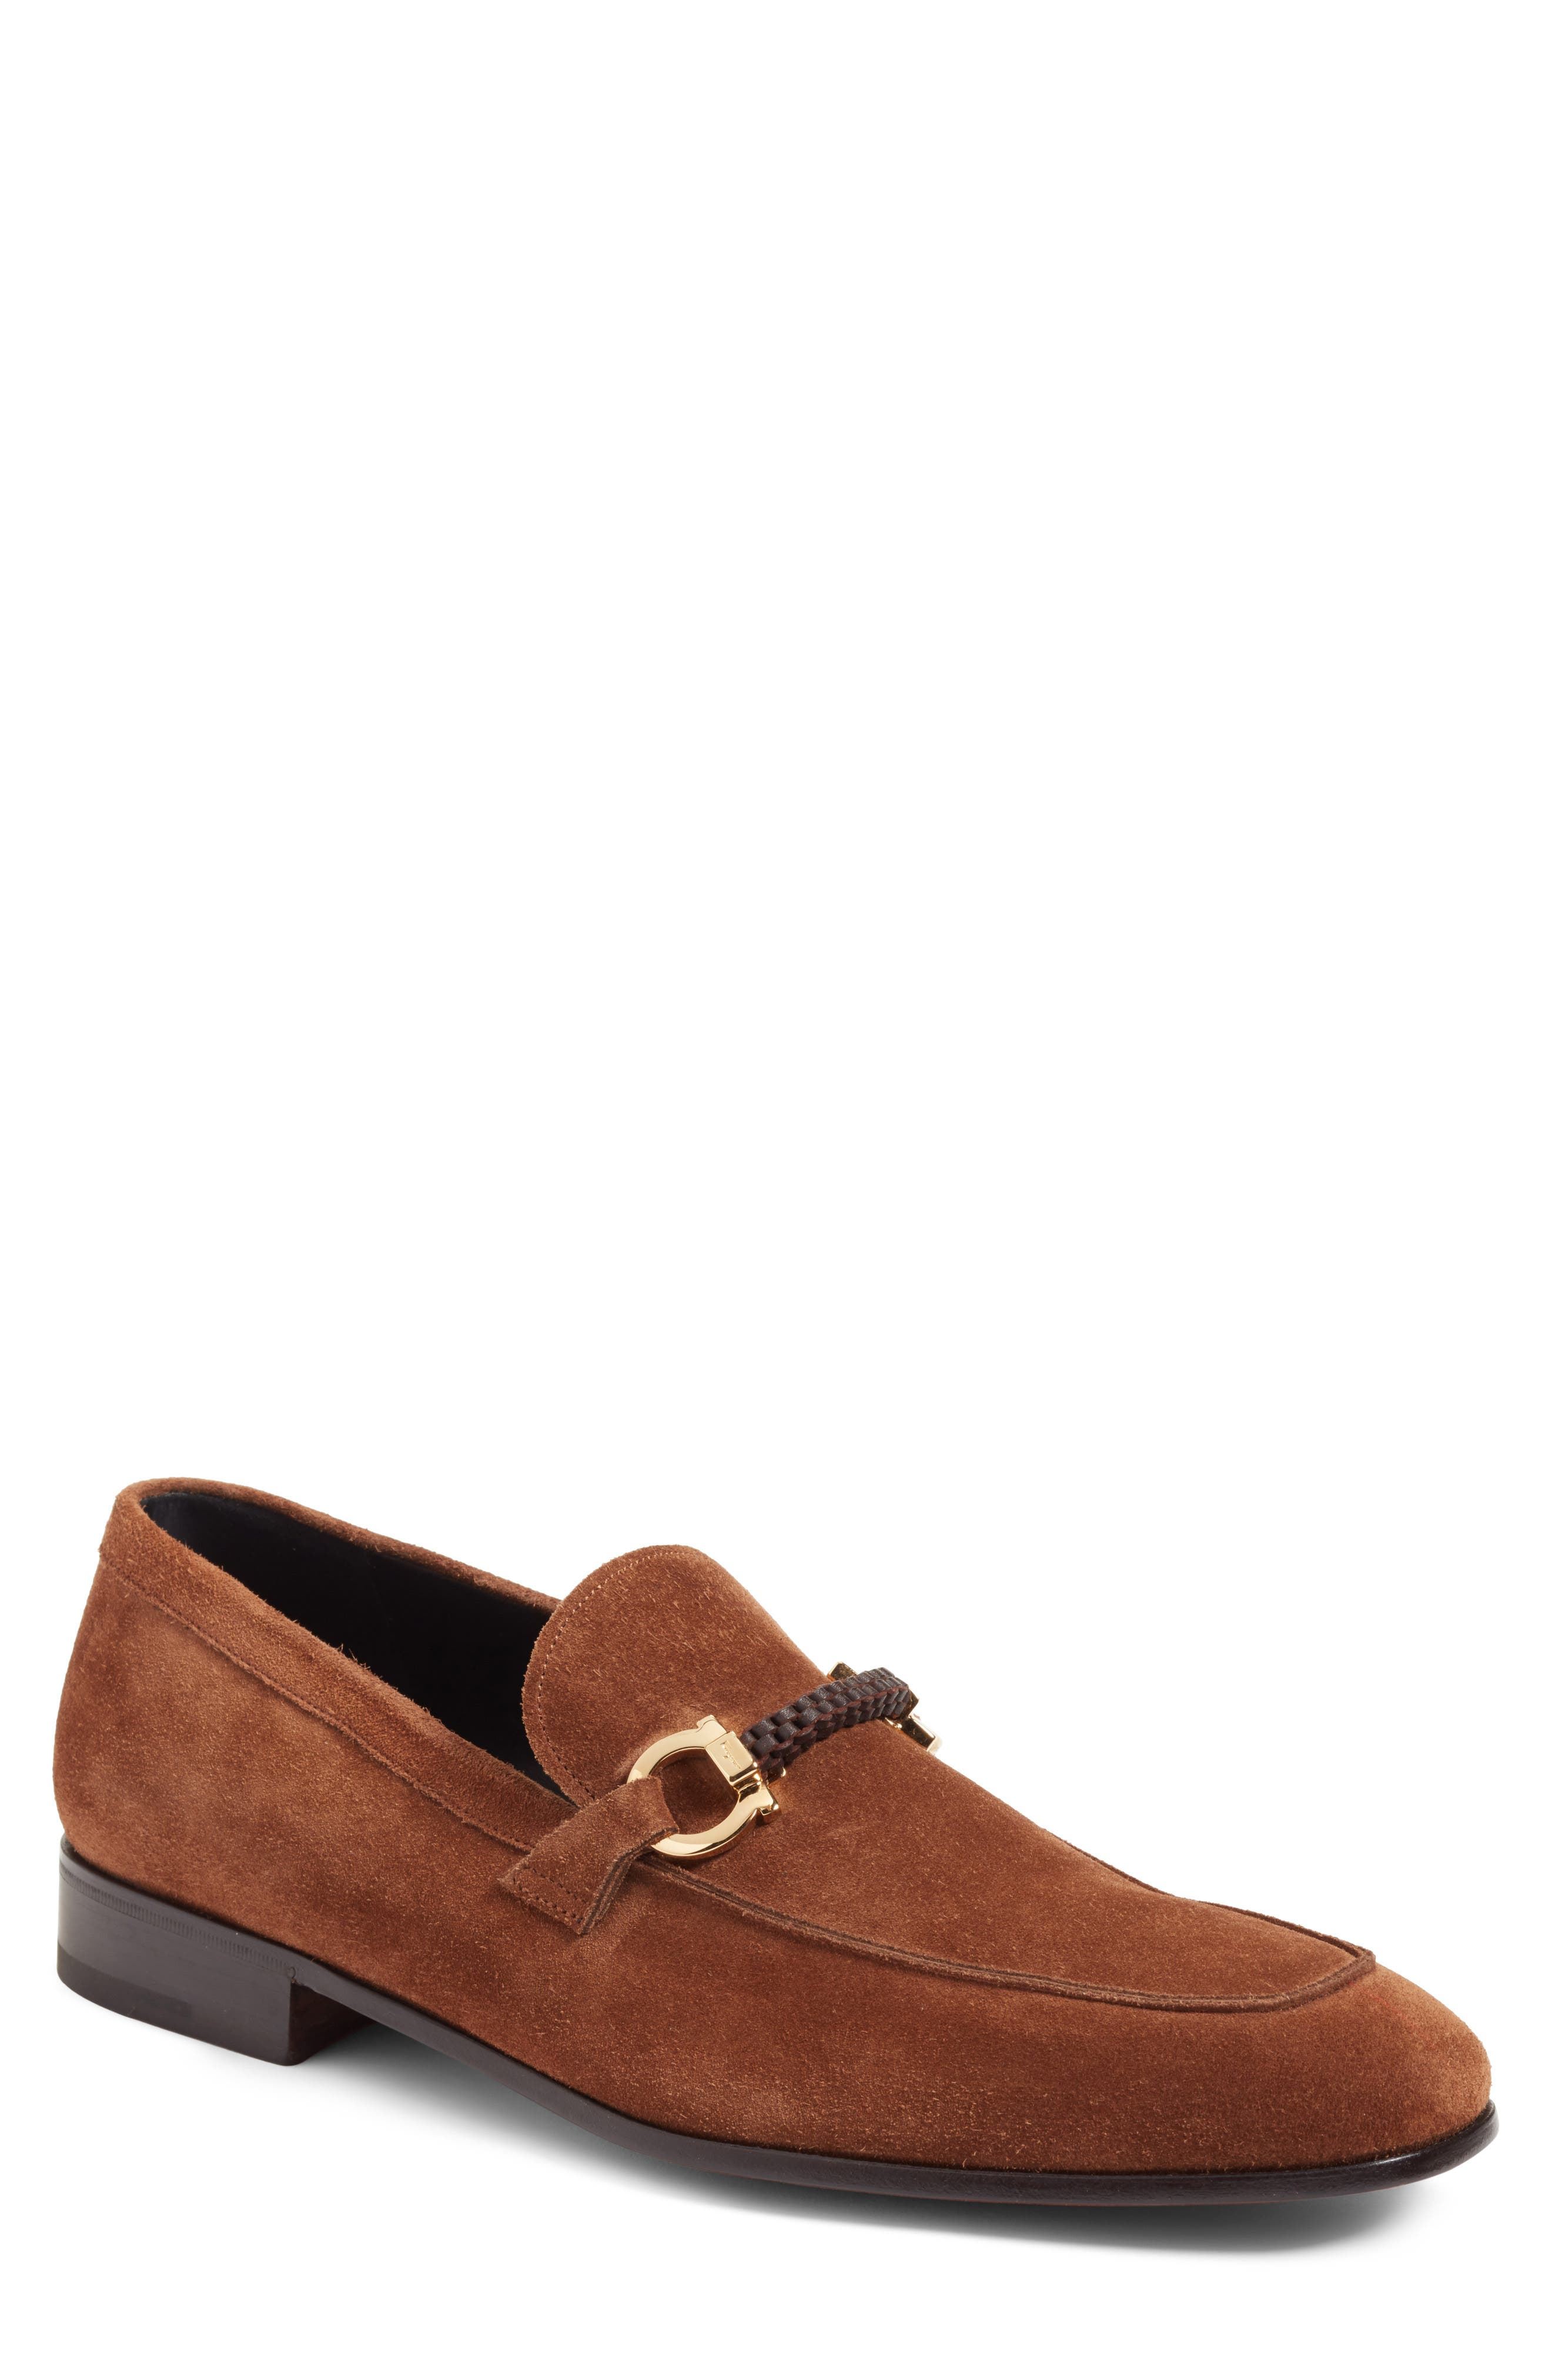 Cross Bit Loafer,                         Main,                         color, Castoro